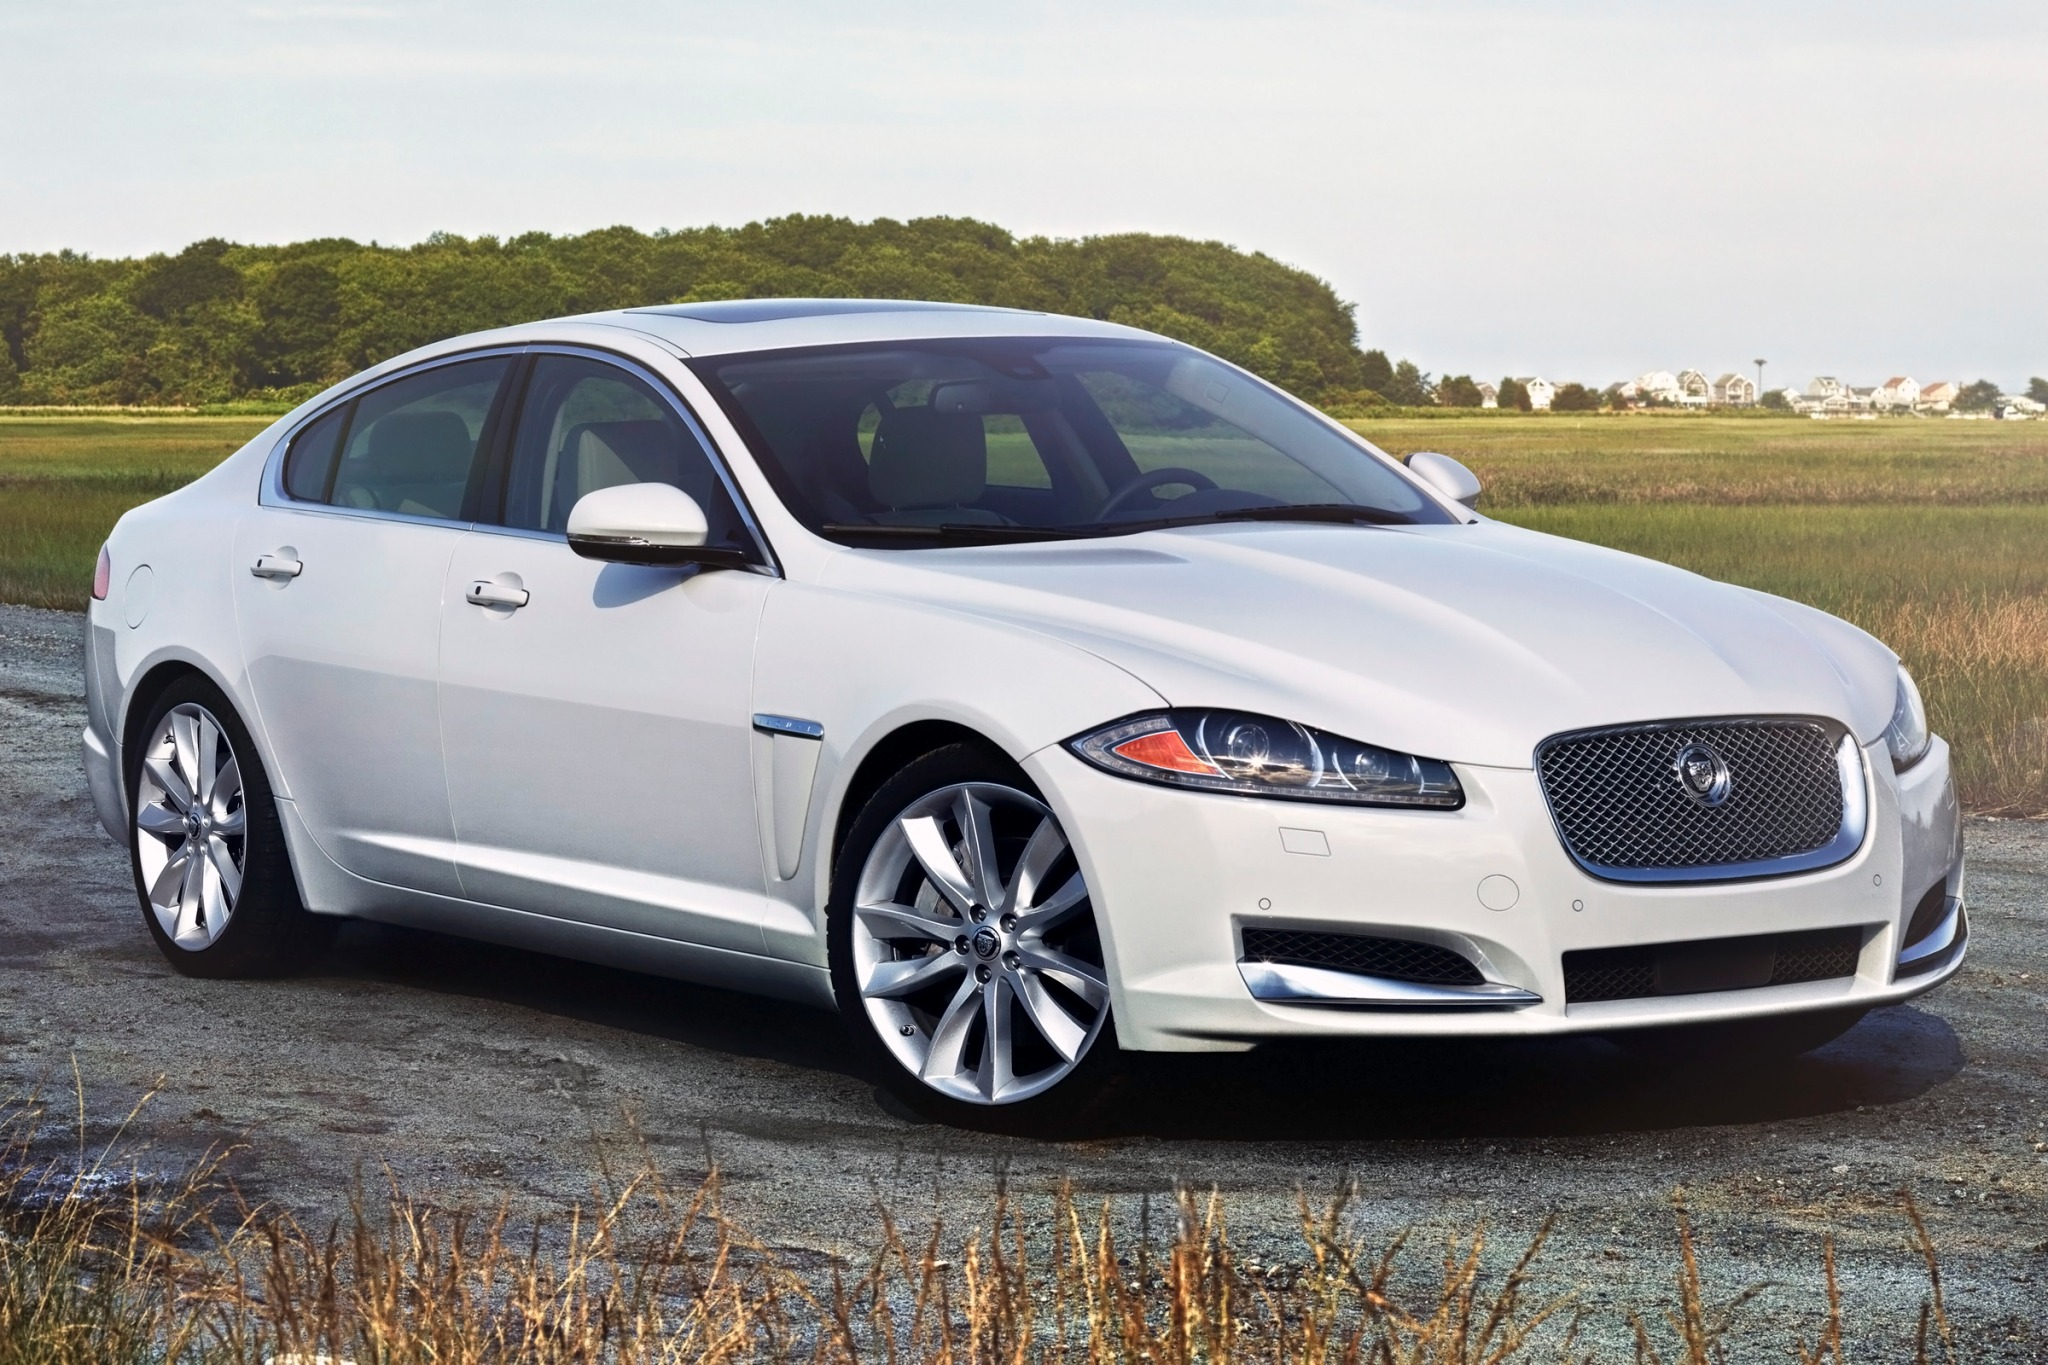 2014 Jaguar XF Sedan Inte interior #6